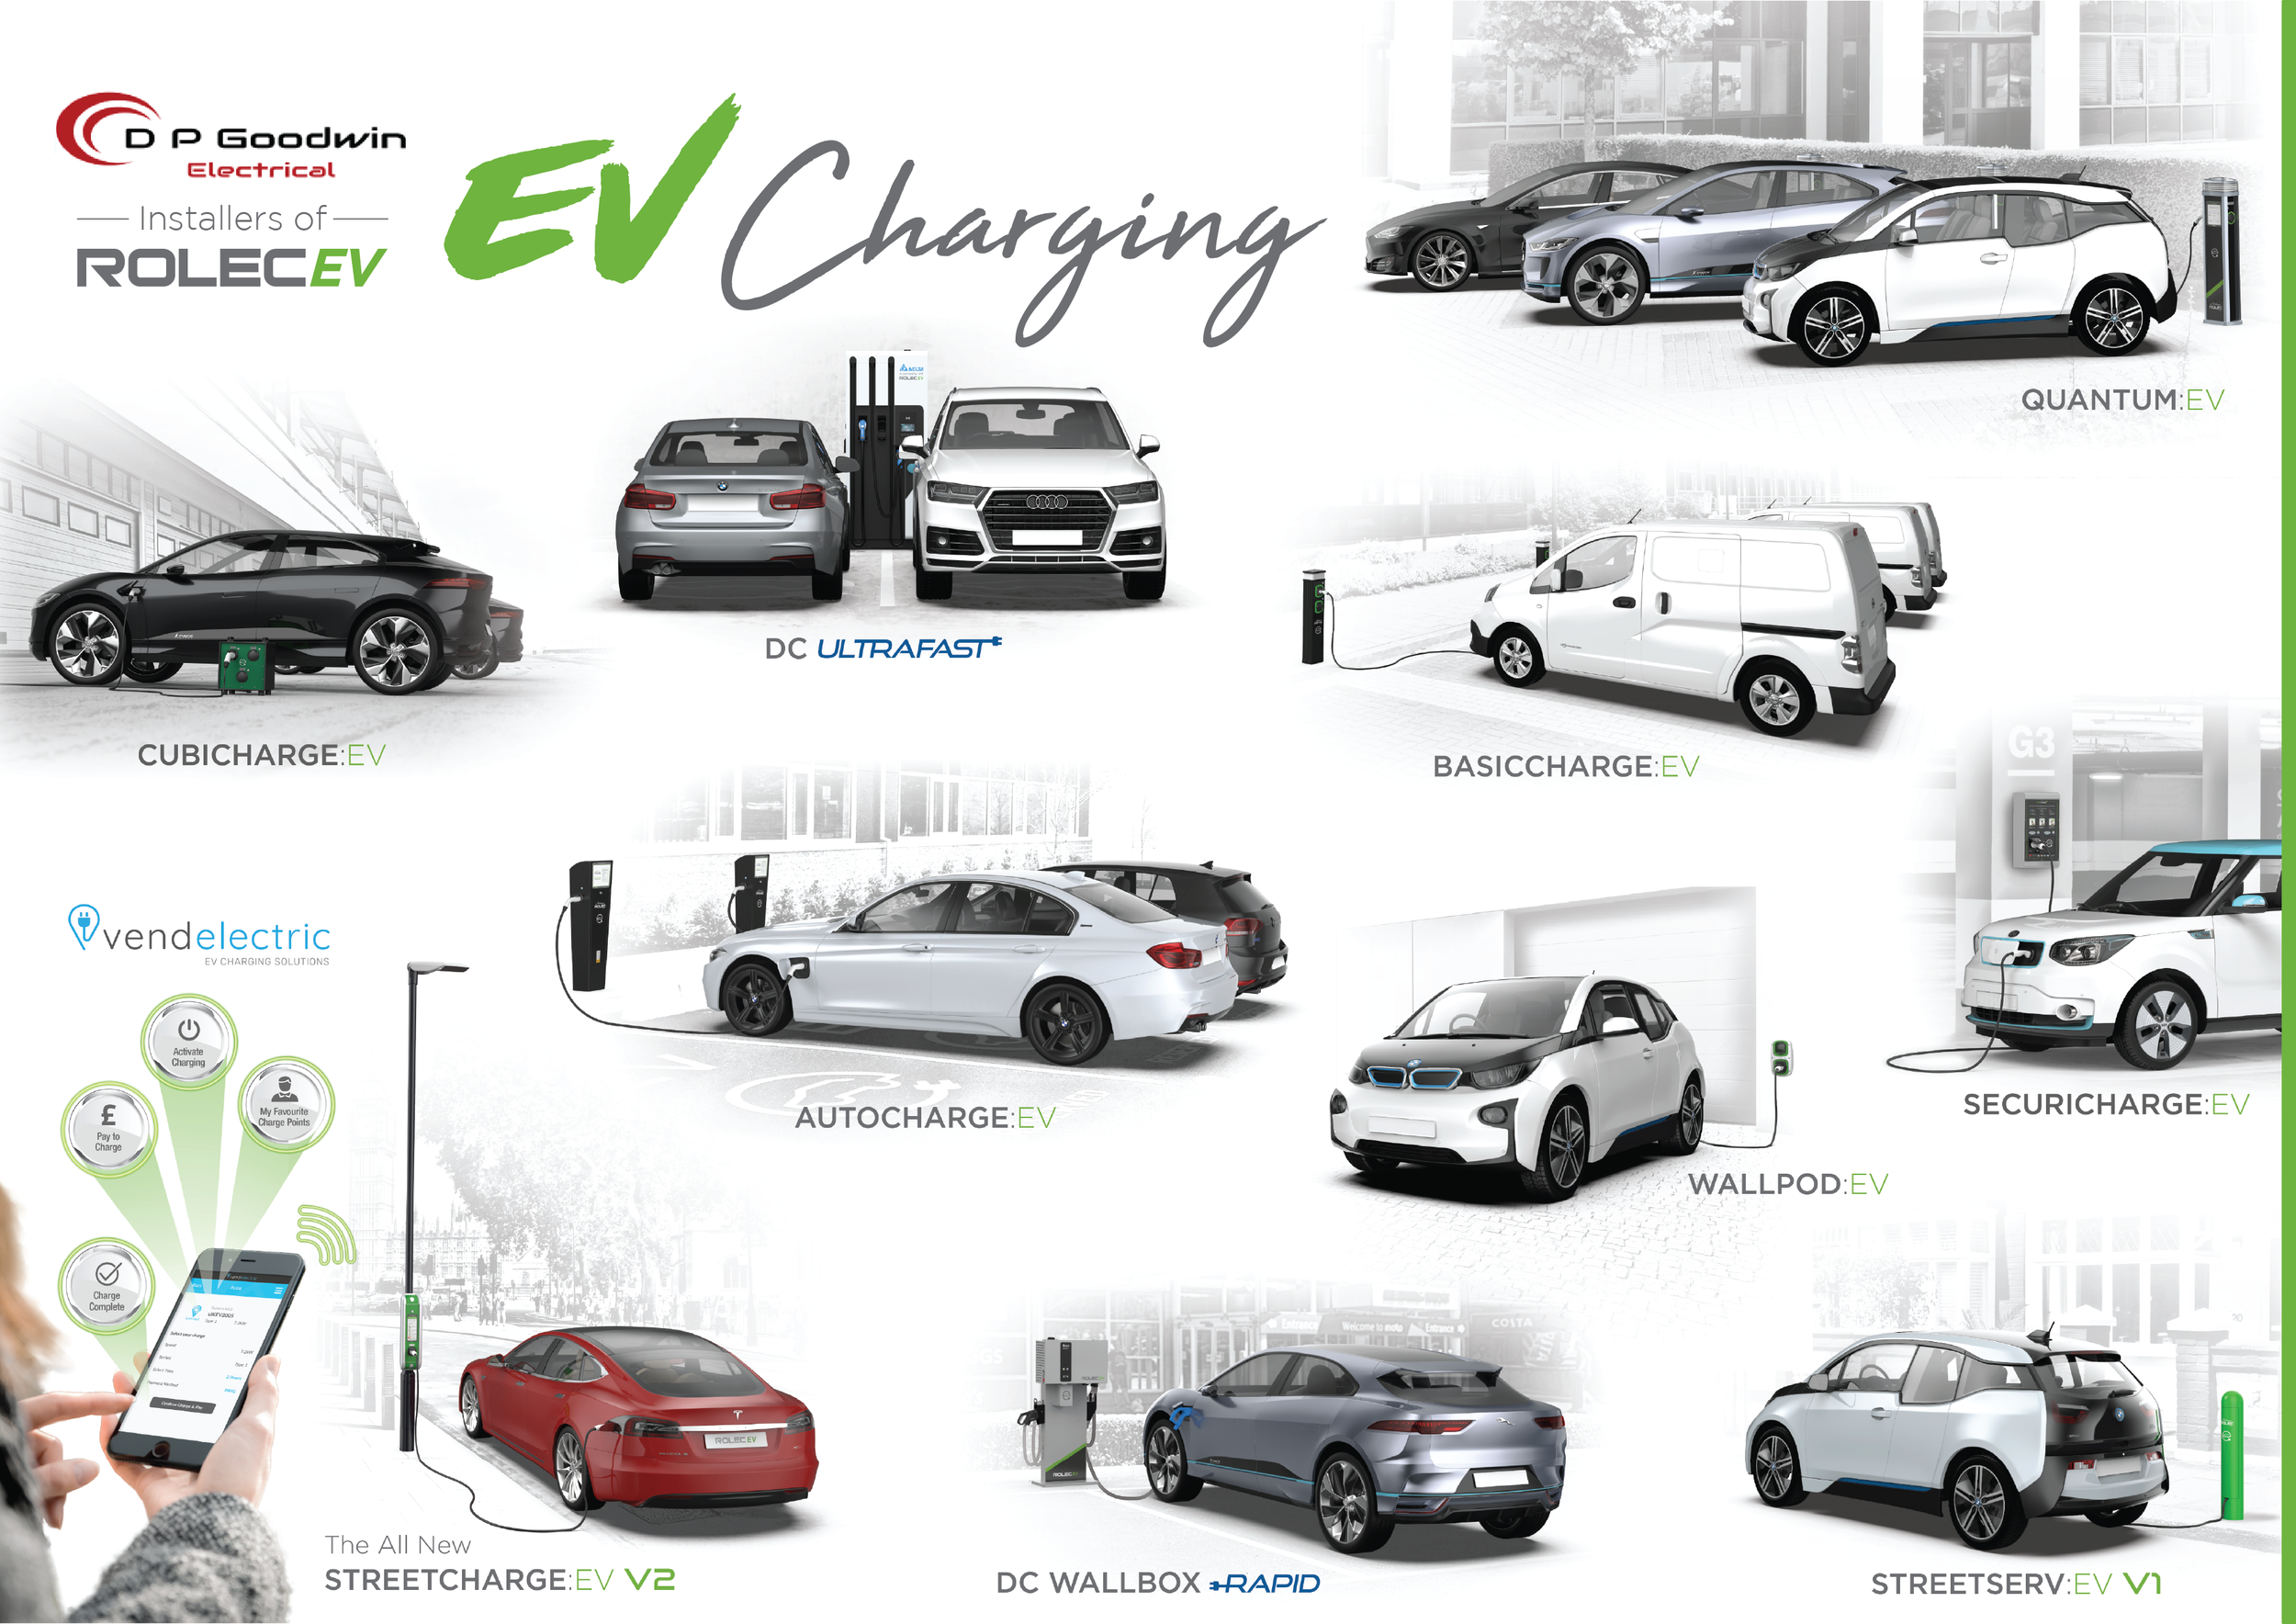 DP Goodwin Group - Electrical - Rolec EV Charging Moodboard.png